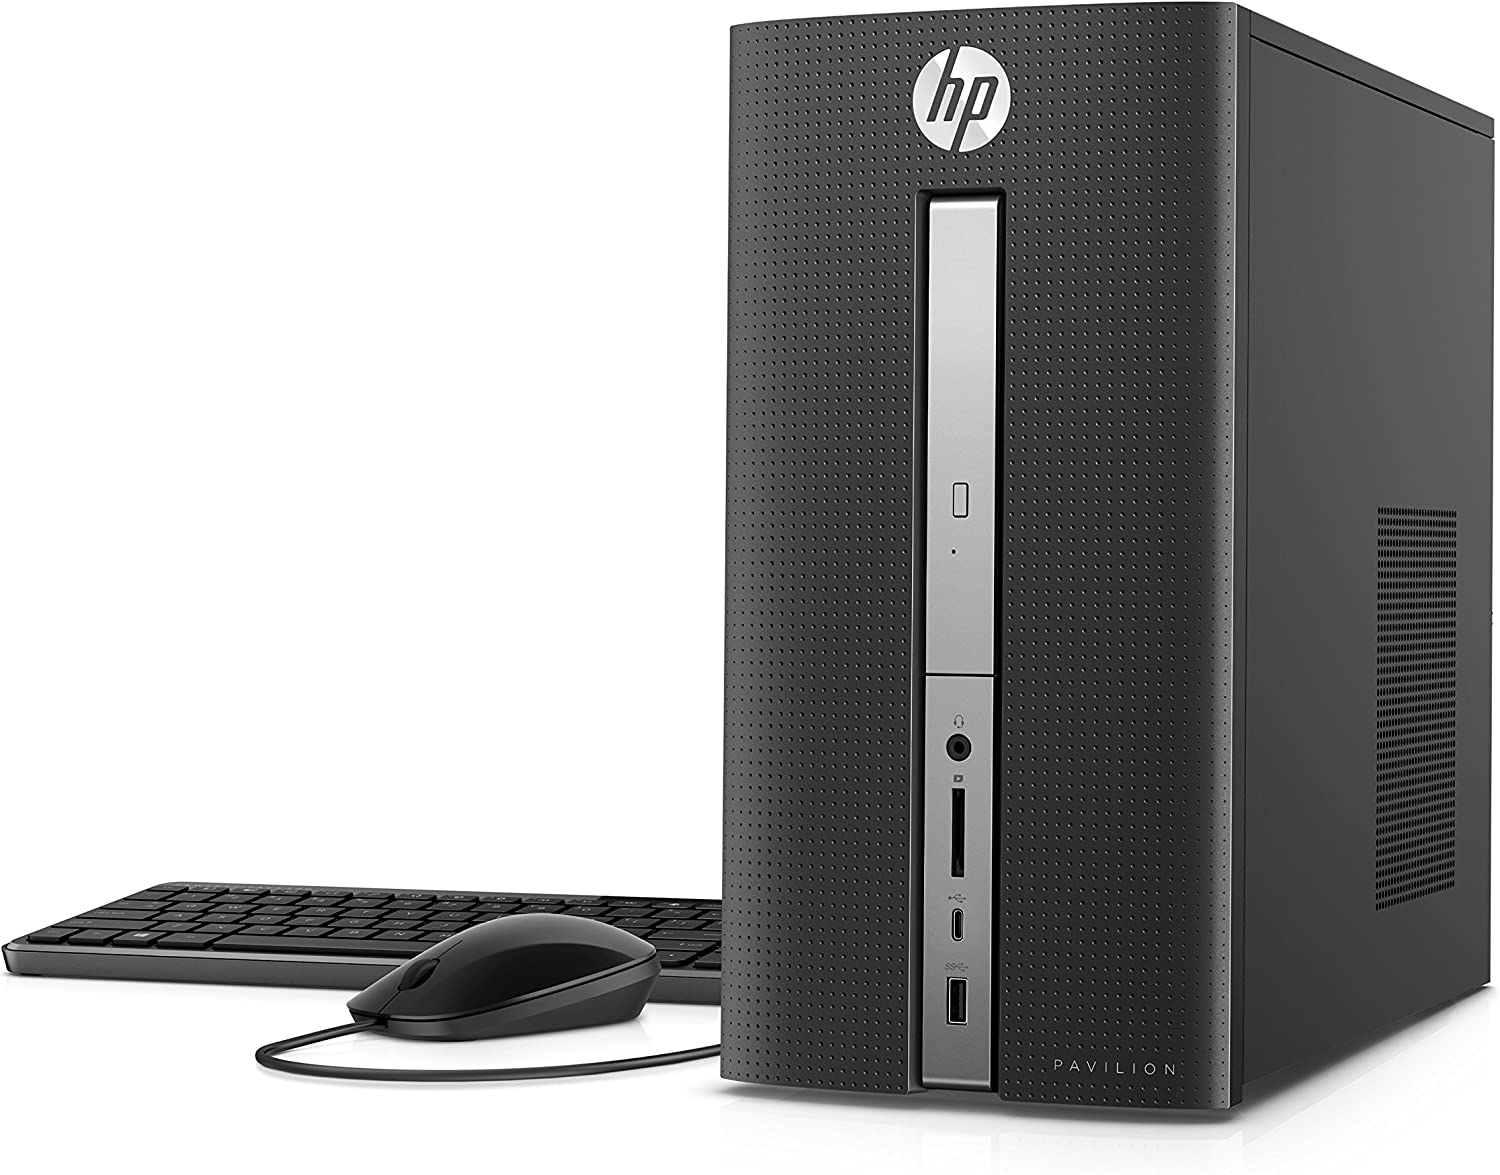 New HP Pavilion Desktop Computer 570, Intel Core i5-7400, 8GB RAM, 128SSD and 1TB HD, Windows 10